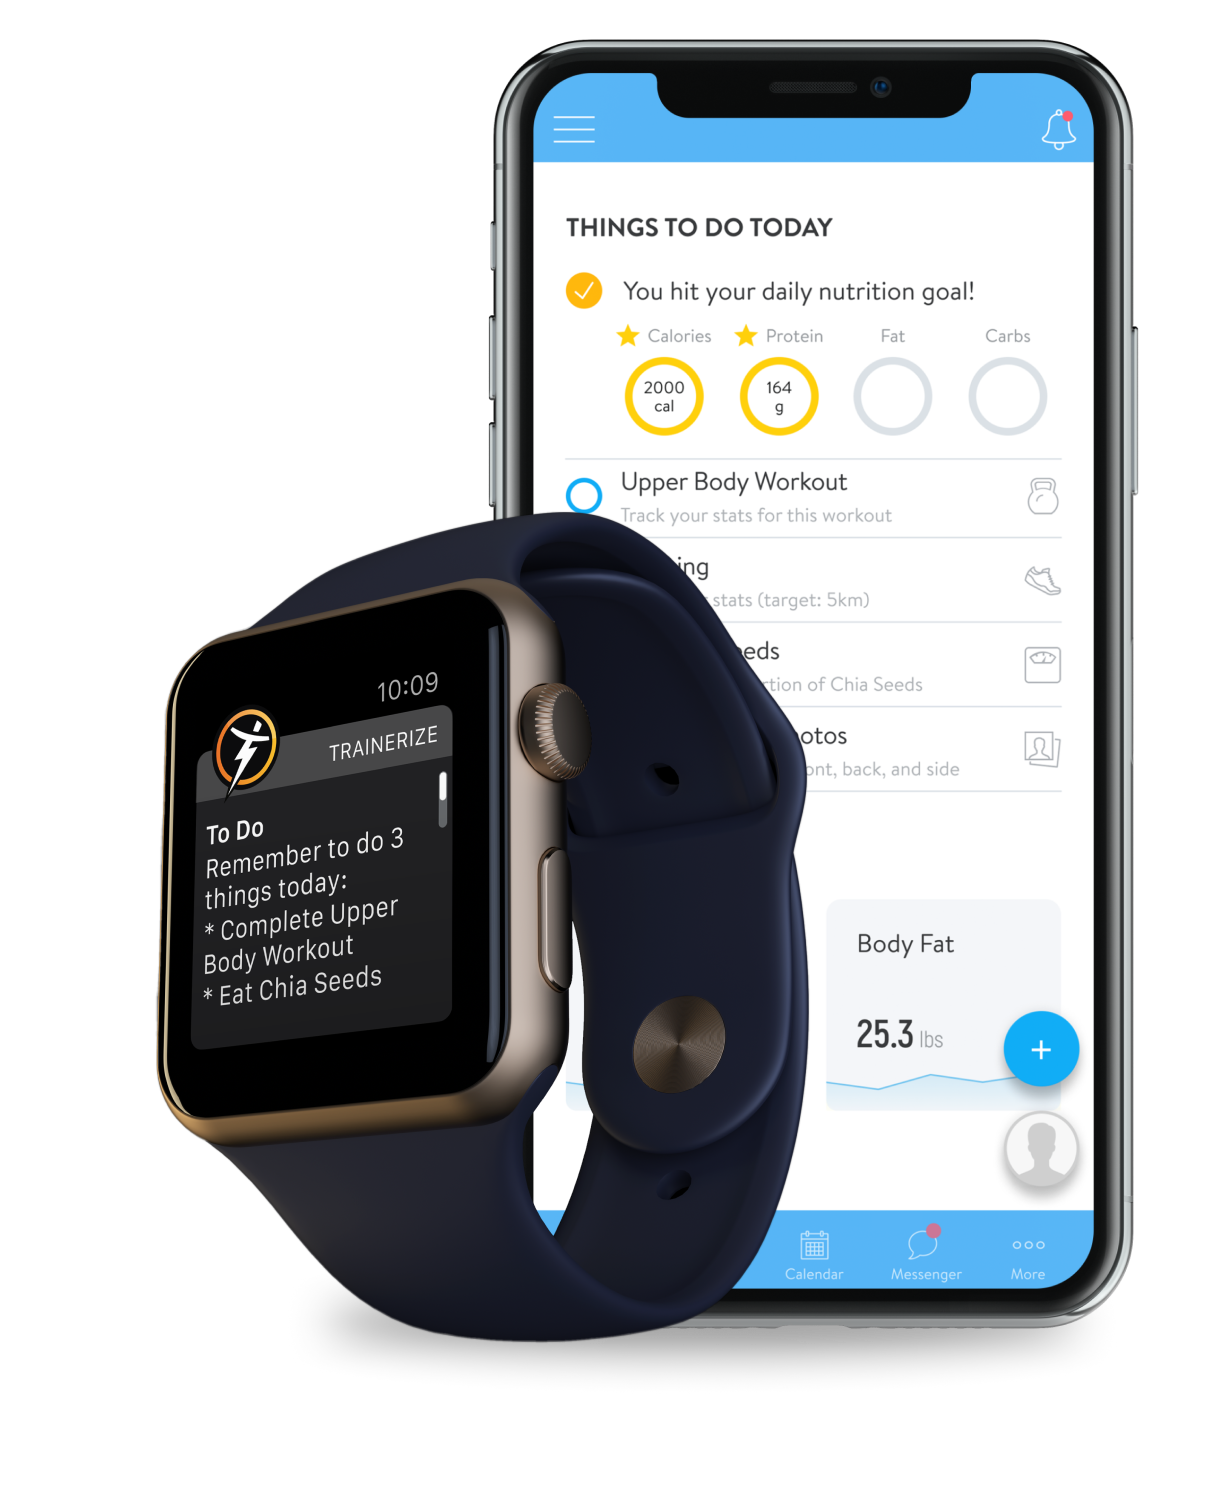 Check off things to do today with the Apple Watch App powered by Trainerize